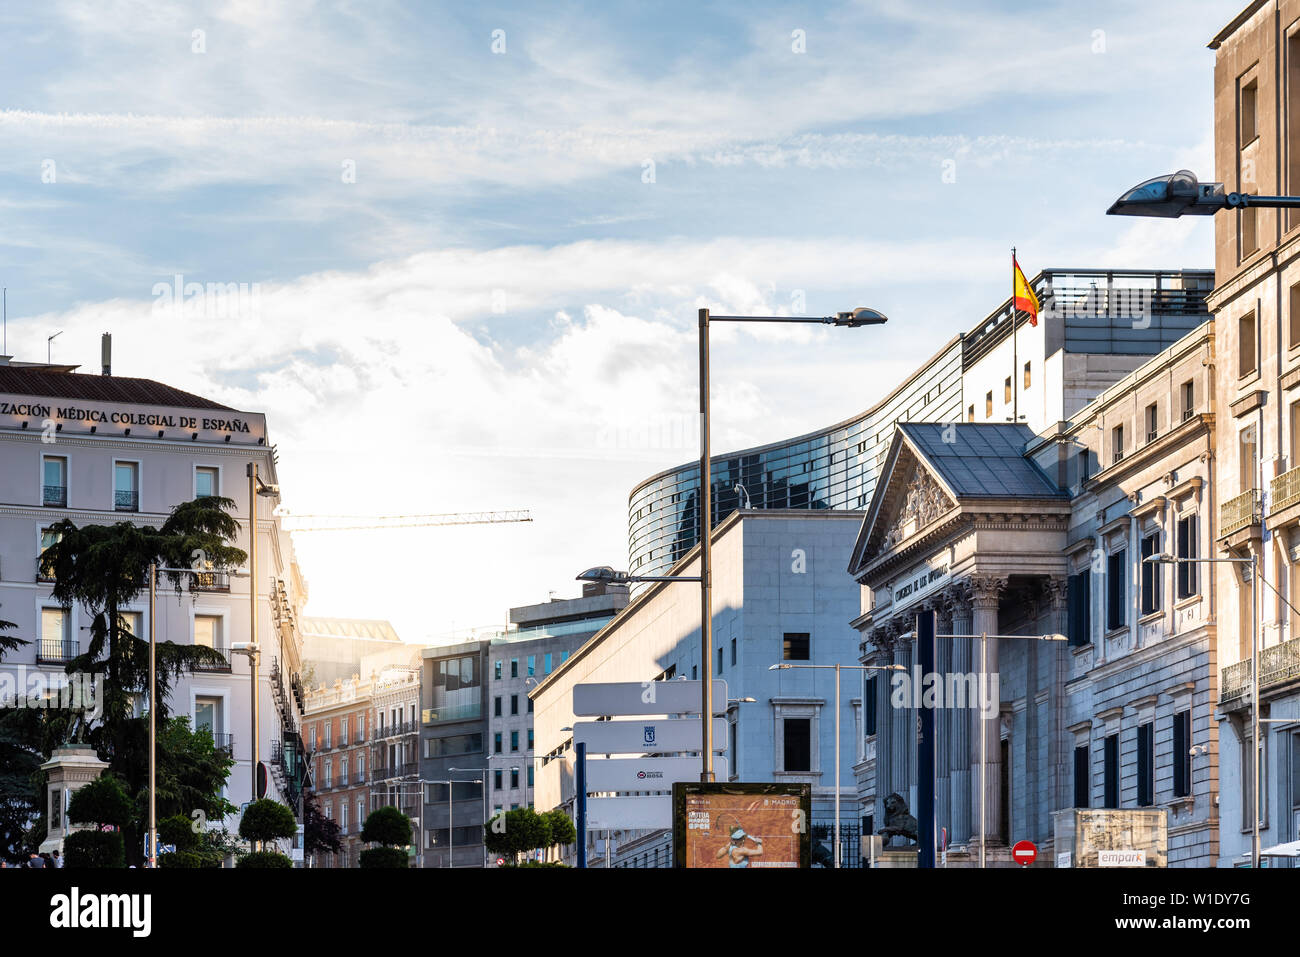 Madrid, Spain - April 14, 2019: Scenic view of the Congress of Deputies of Spain in Madrid a sunny day with sun flares at evening. Stock Photo